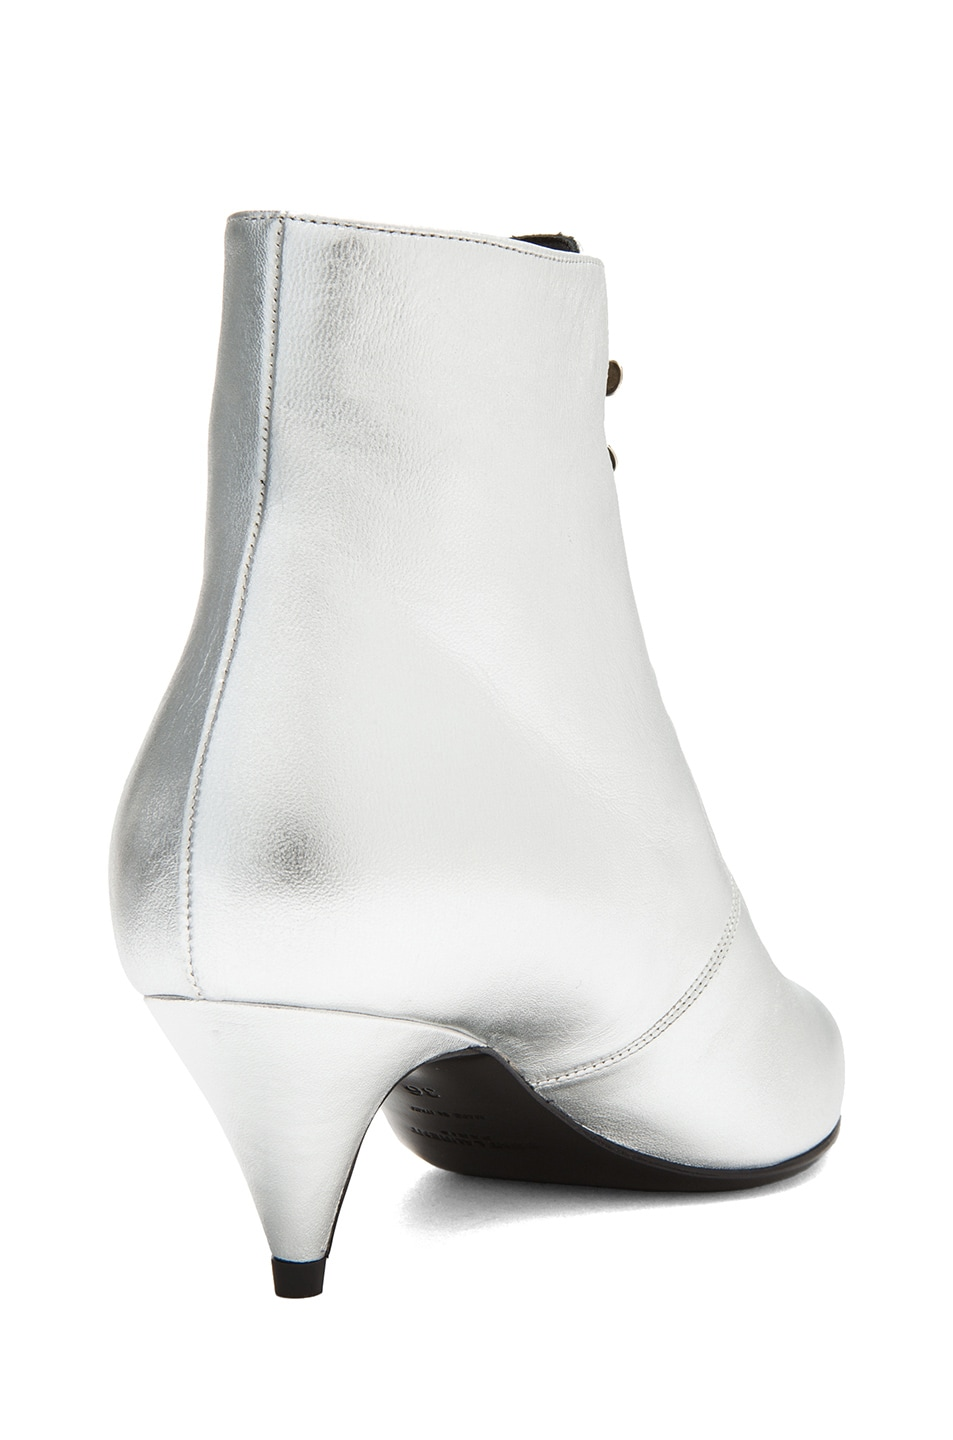 Image 3 of Saint Laurent Cat Lambskin Leather Booties in Silver